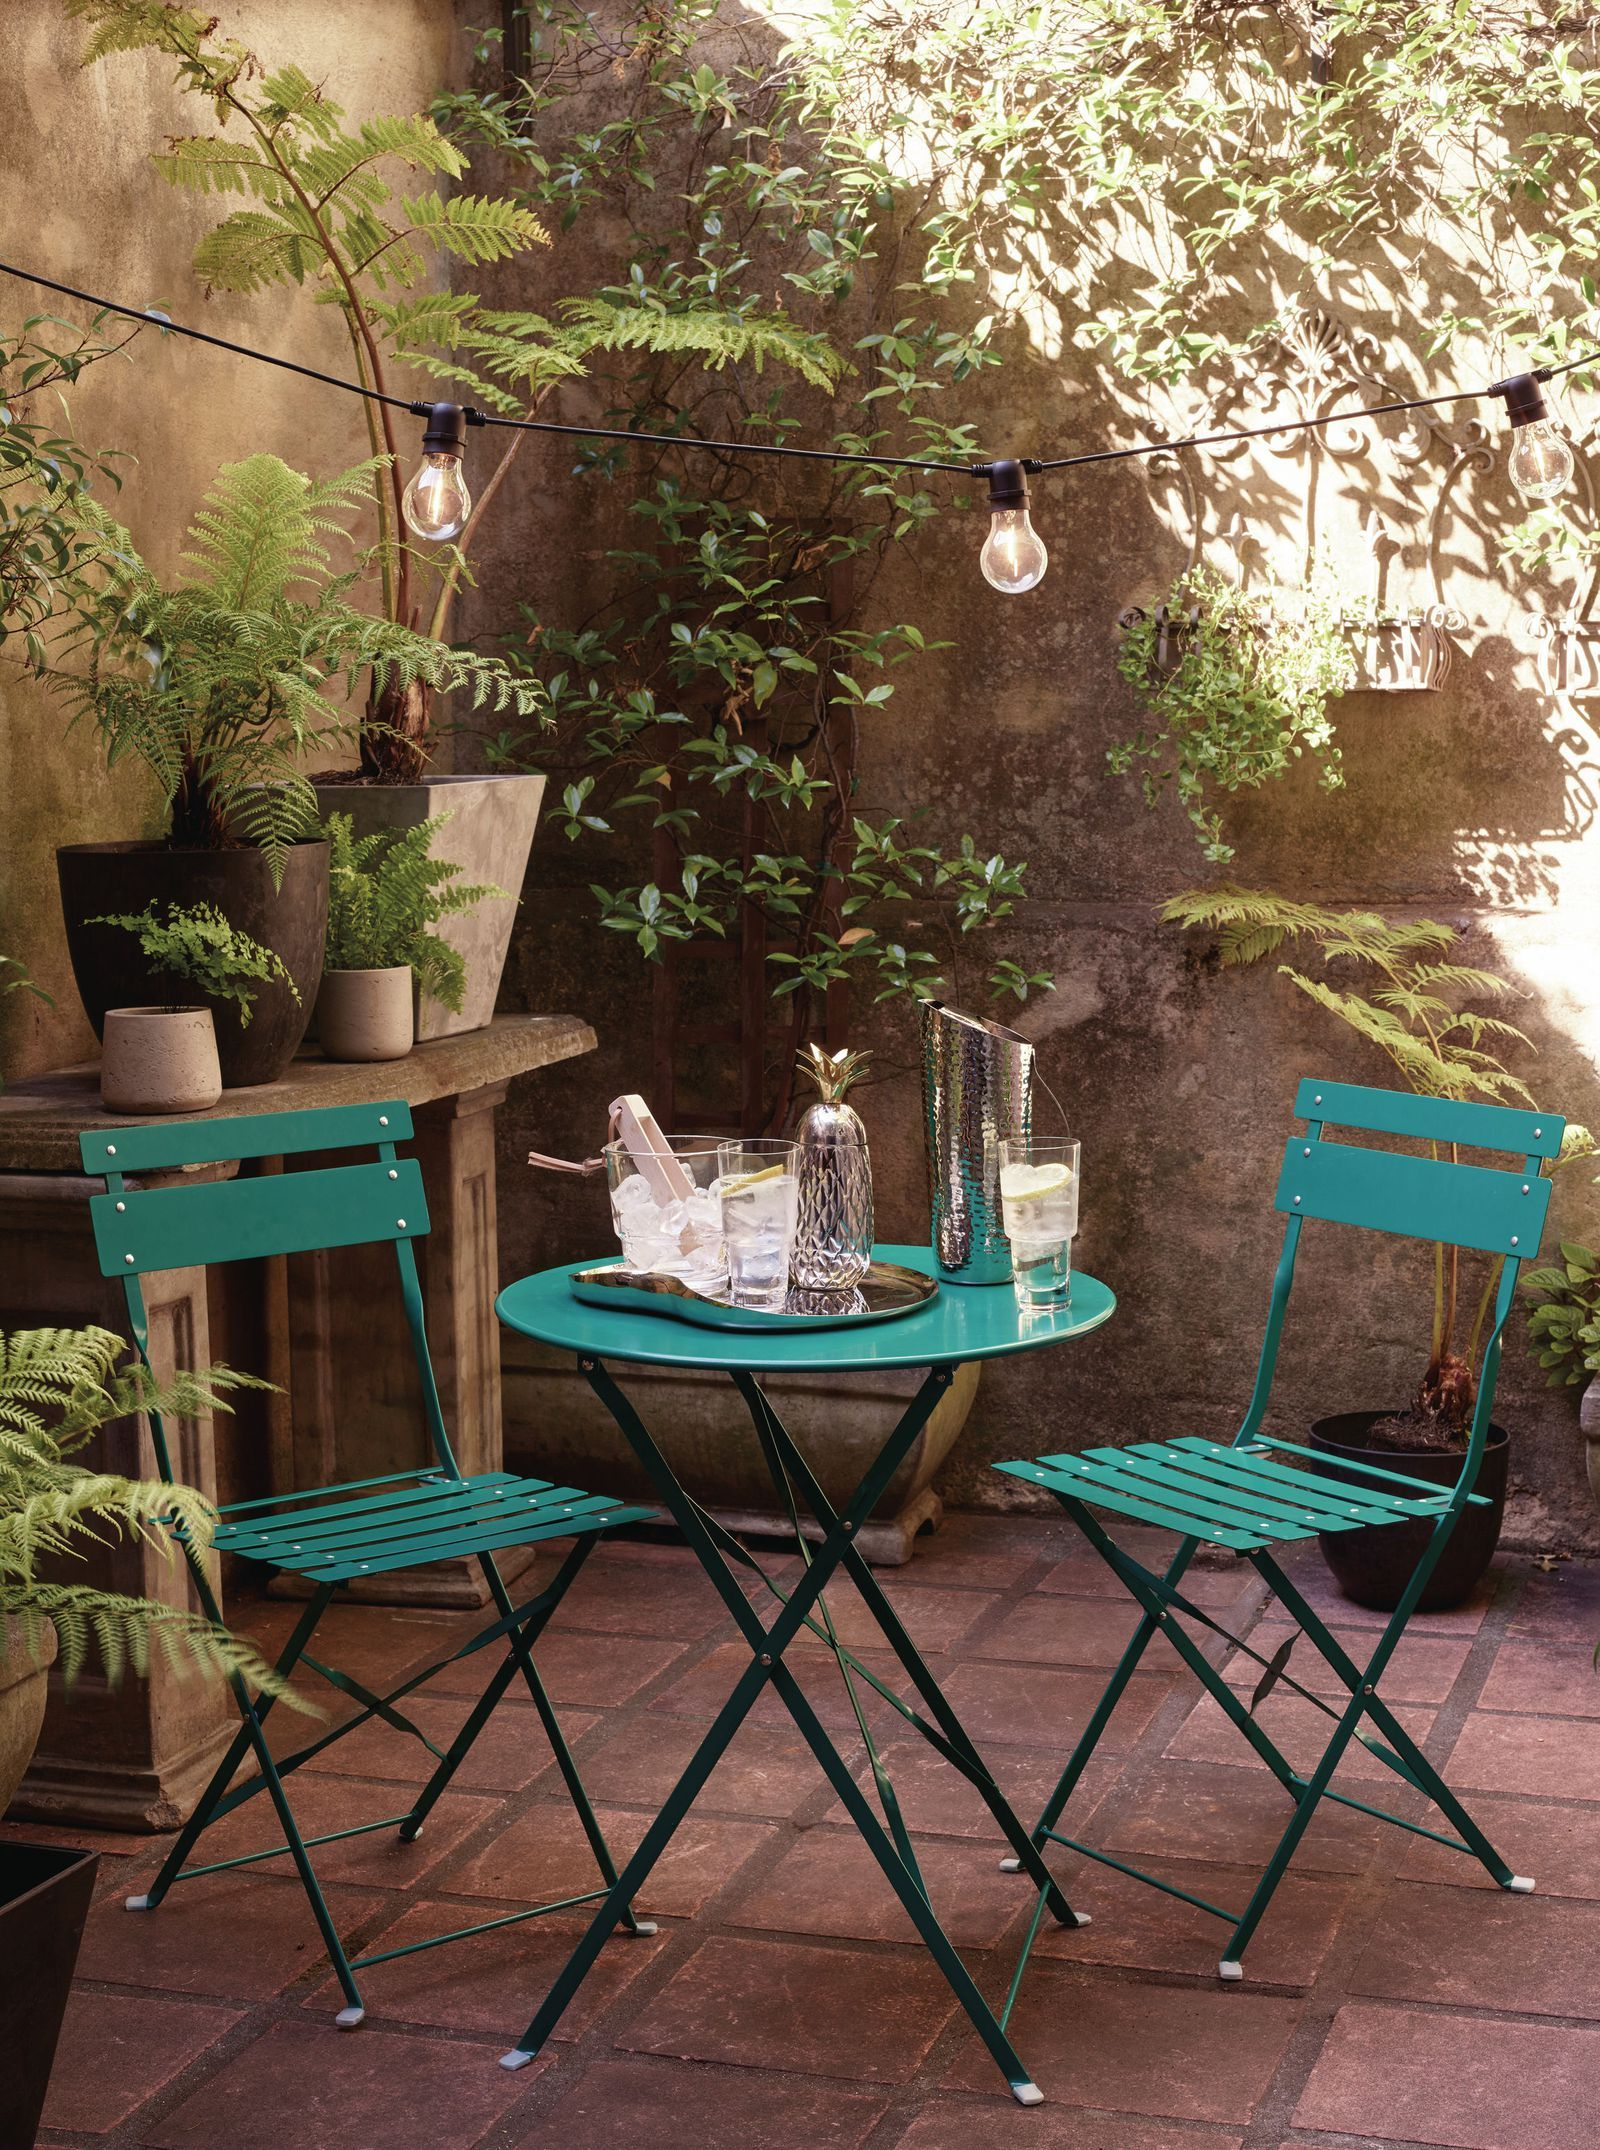 10 garden furniture sets perfect for outdoor entertaining add a splash of colour to your garden and outdoor space with a bold table and chairs set that